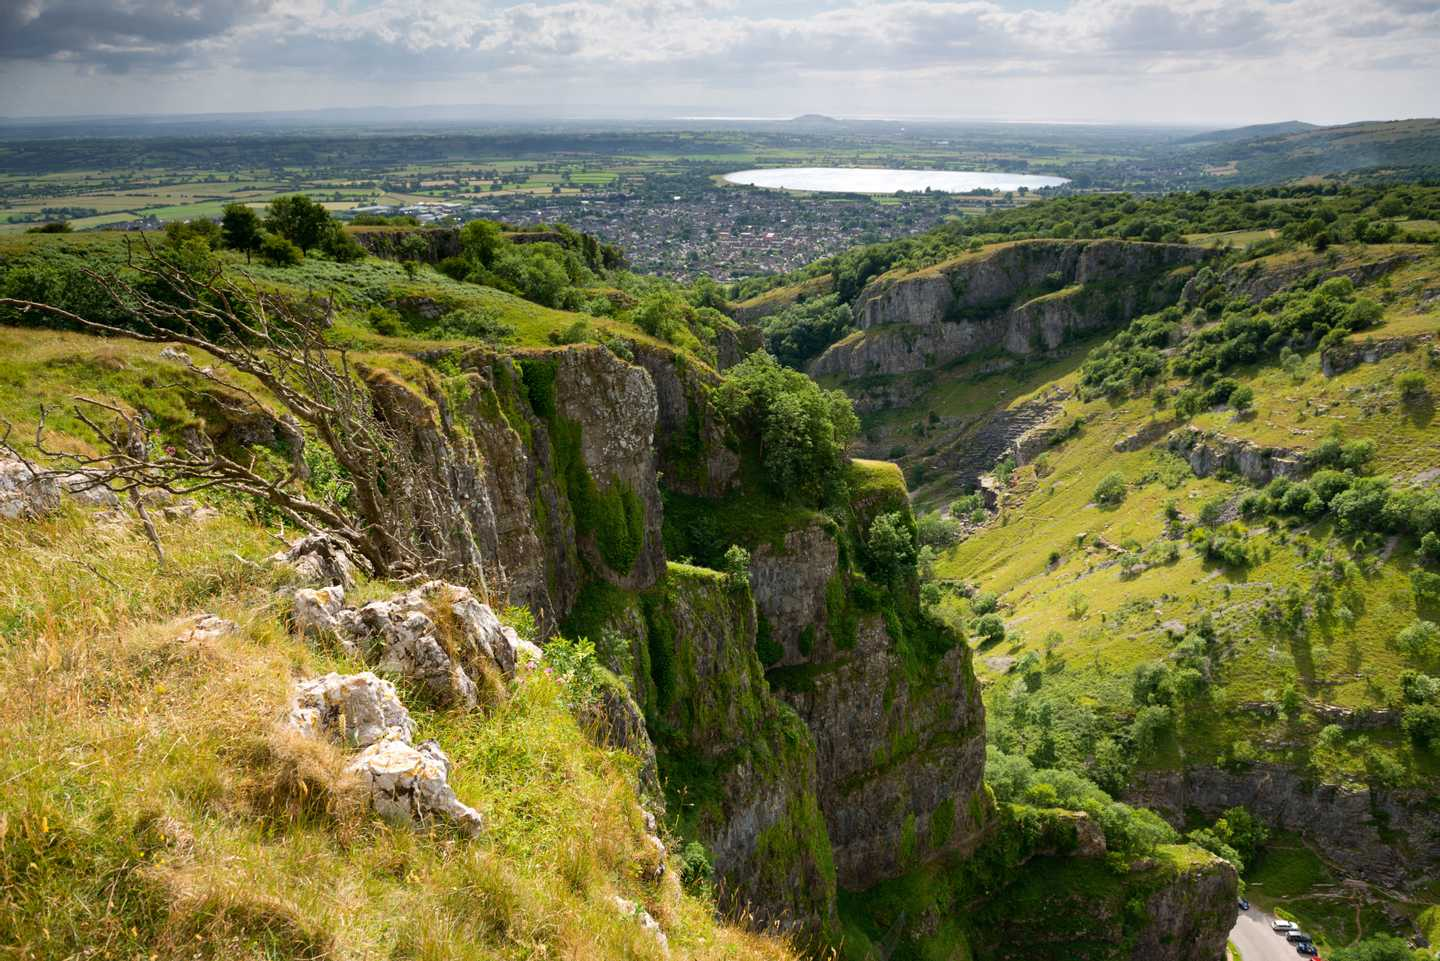 Panoramic view of Cheddar Caves and Gorge